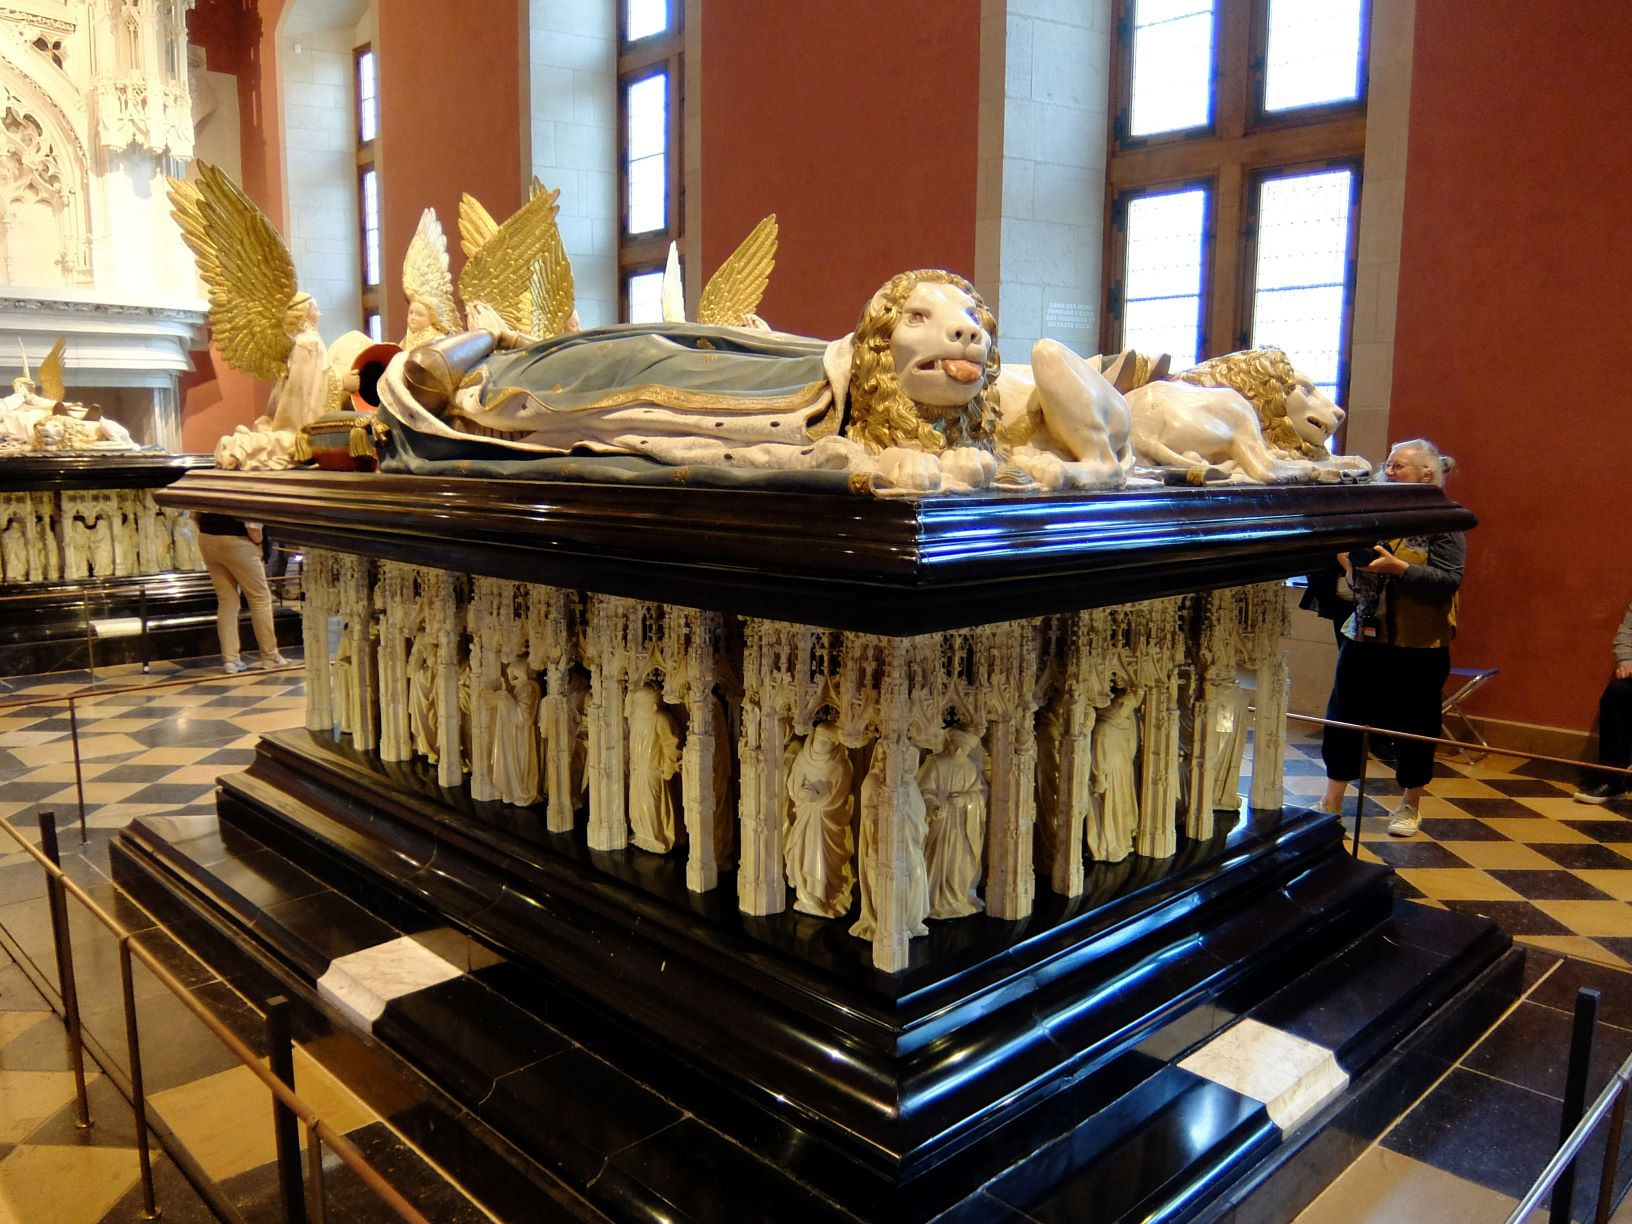 tomb of a duke of Burgundy in museum